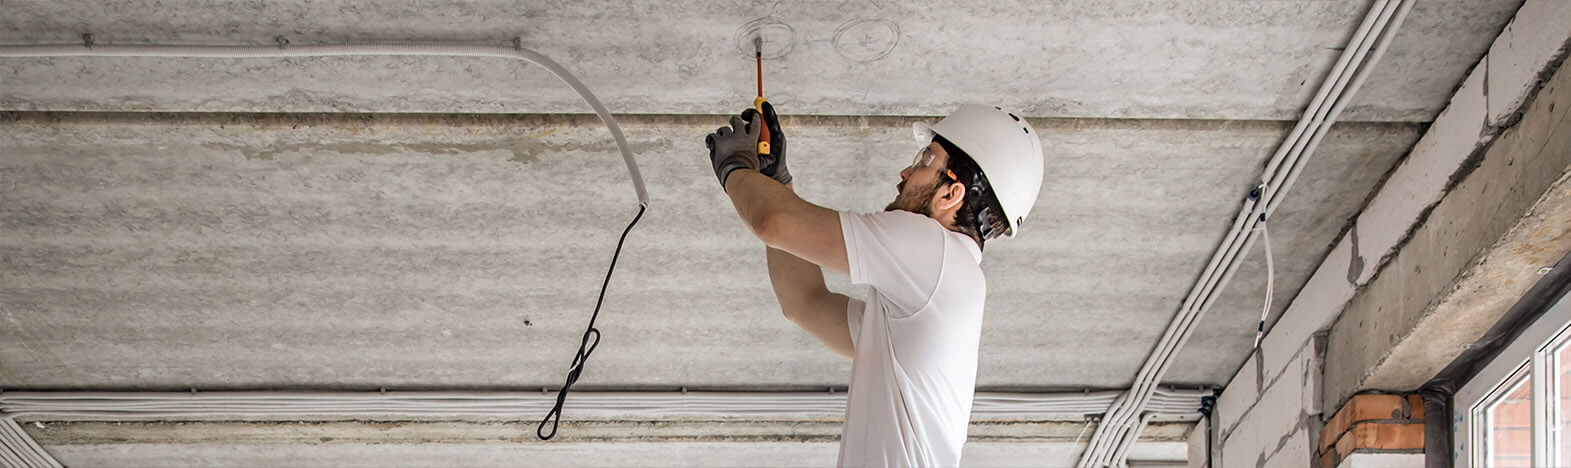 Langley City Electrician, Electrical Contractor and Residential Electrician